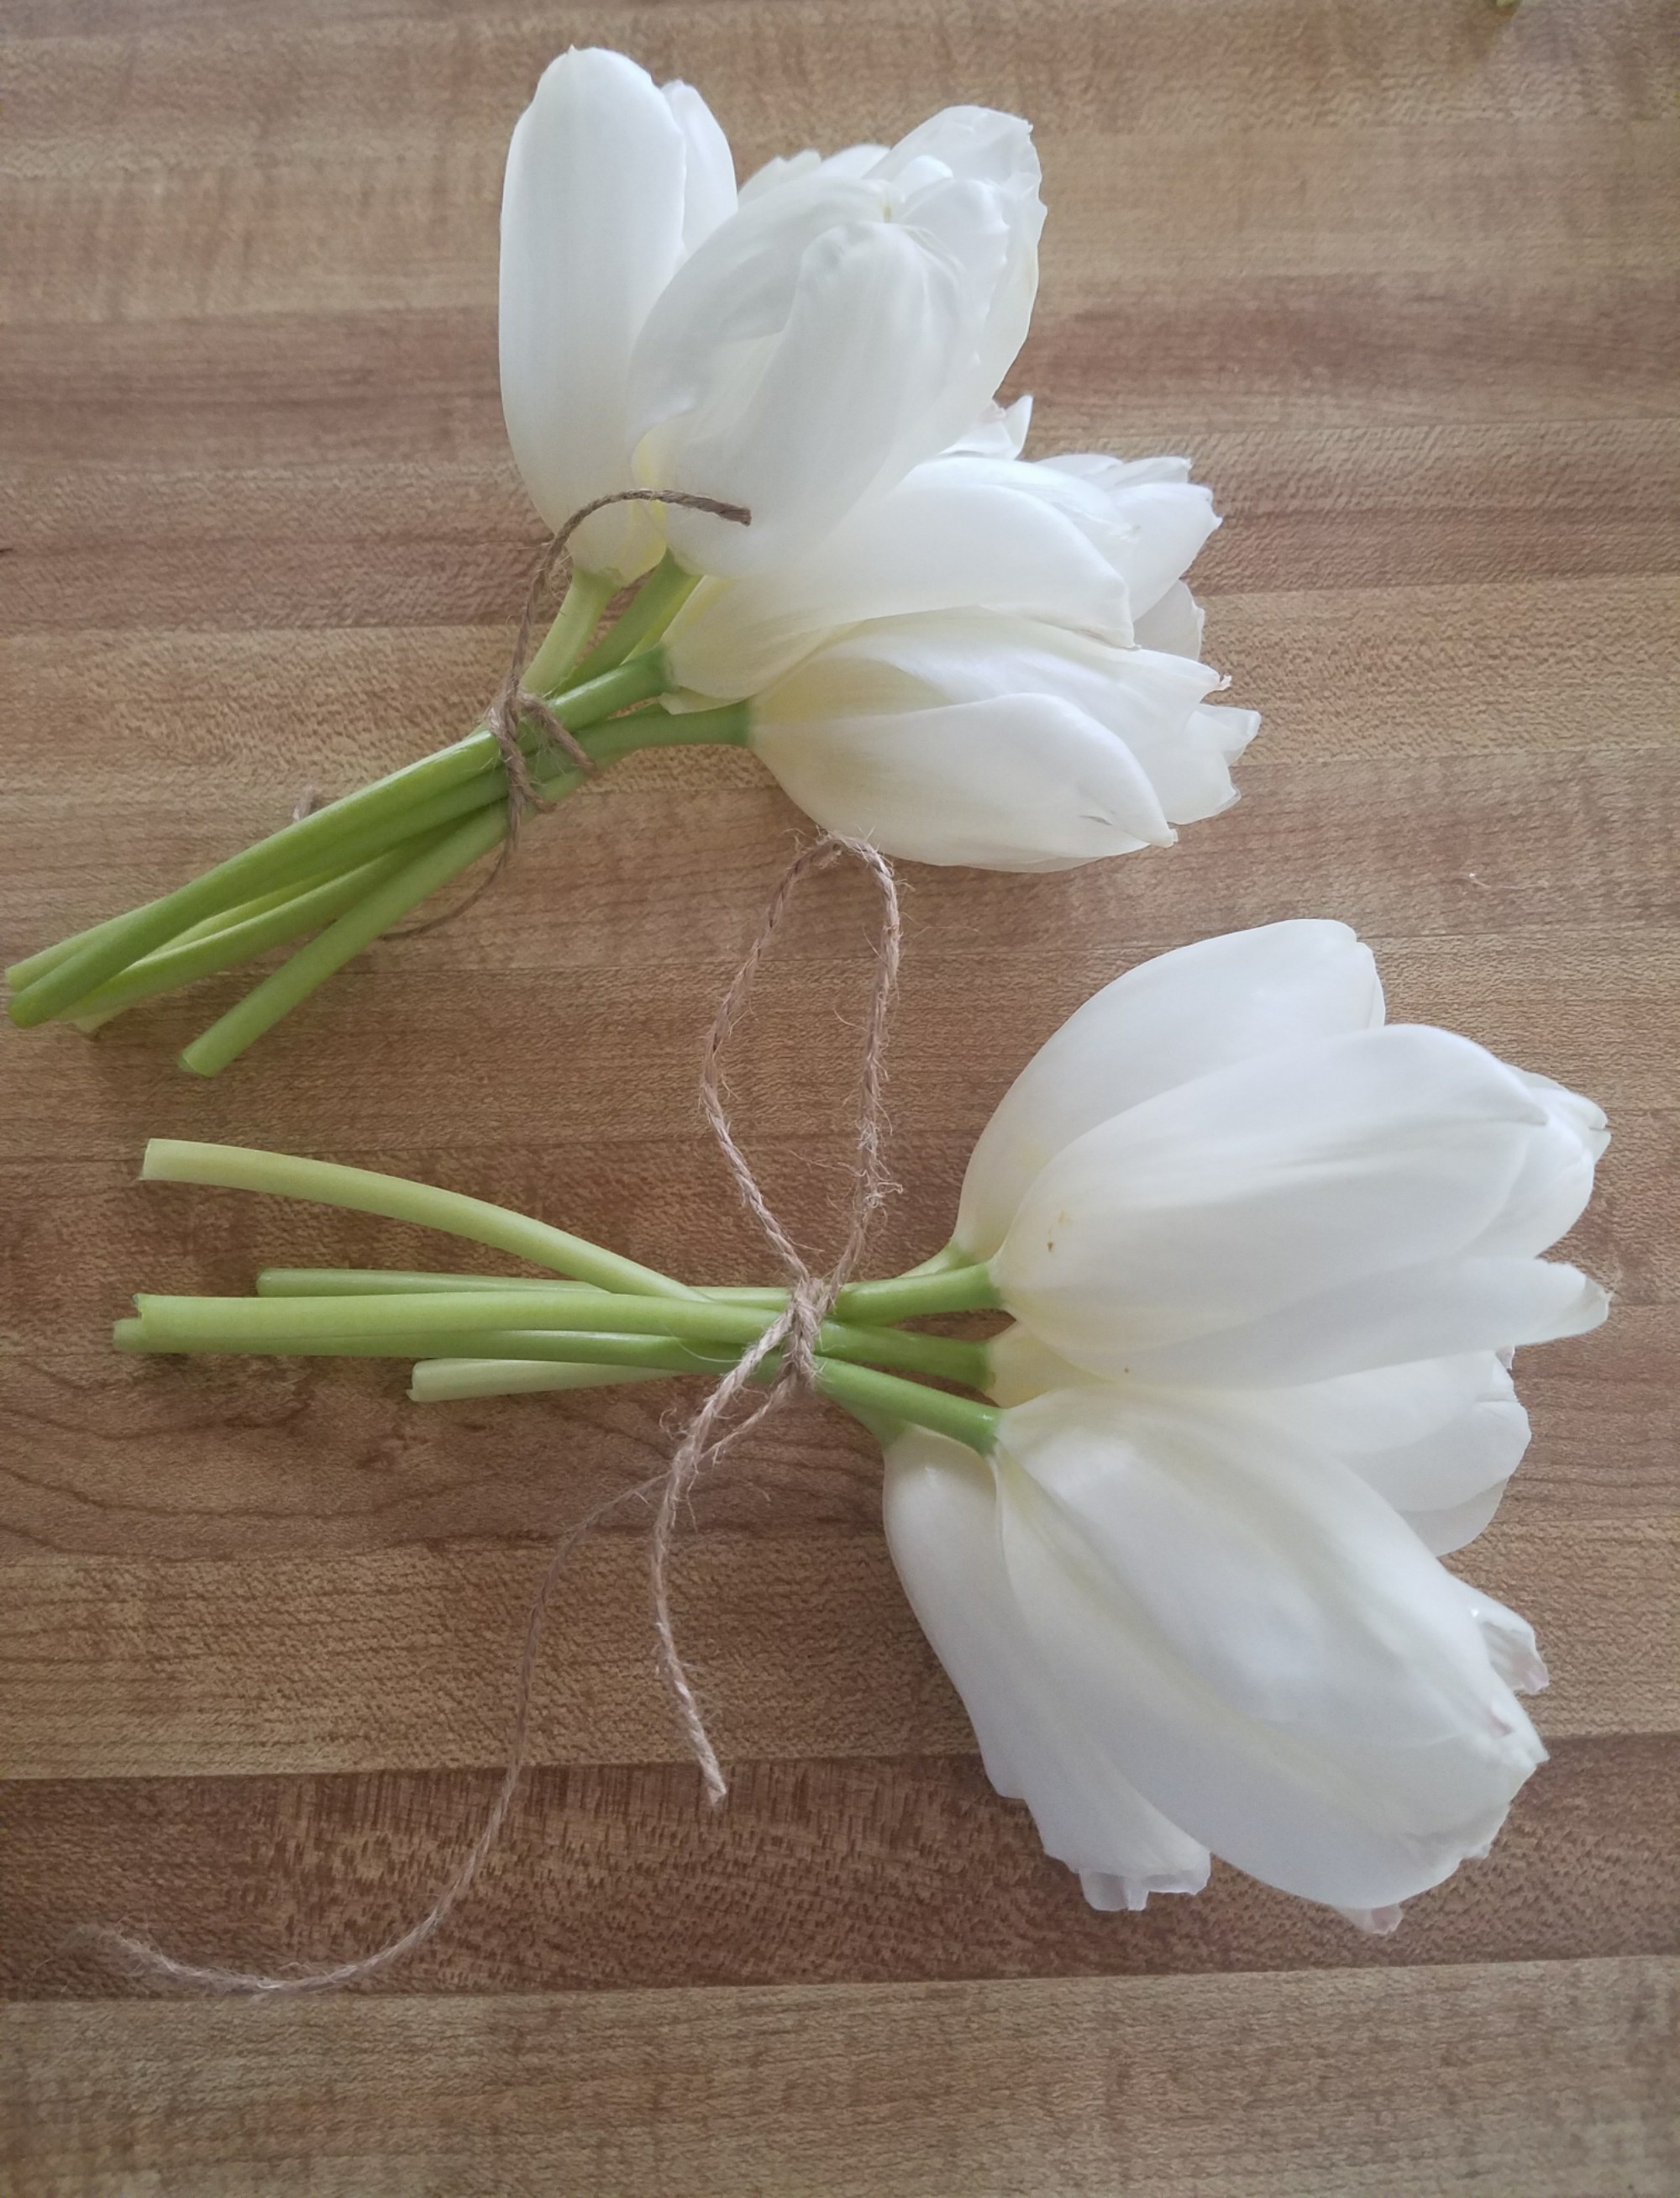 Enjoy tulips longer by making small bouquets